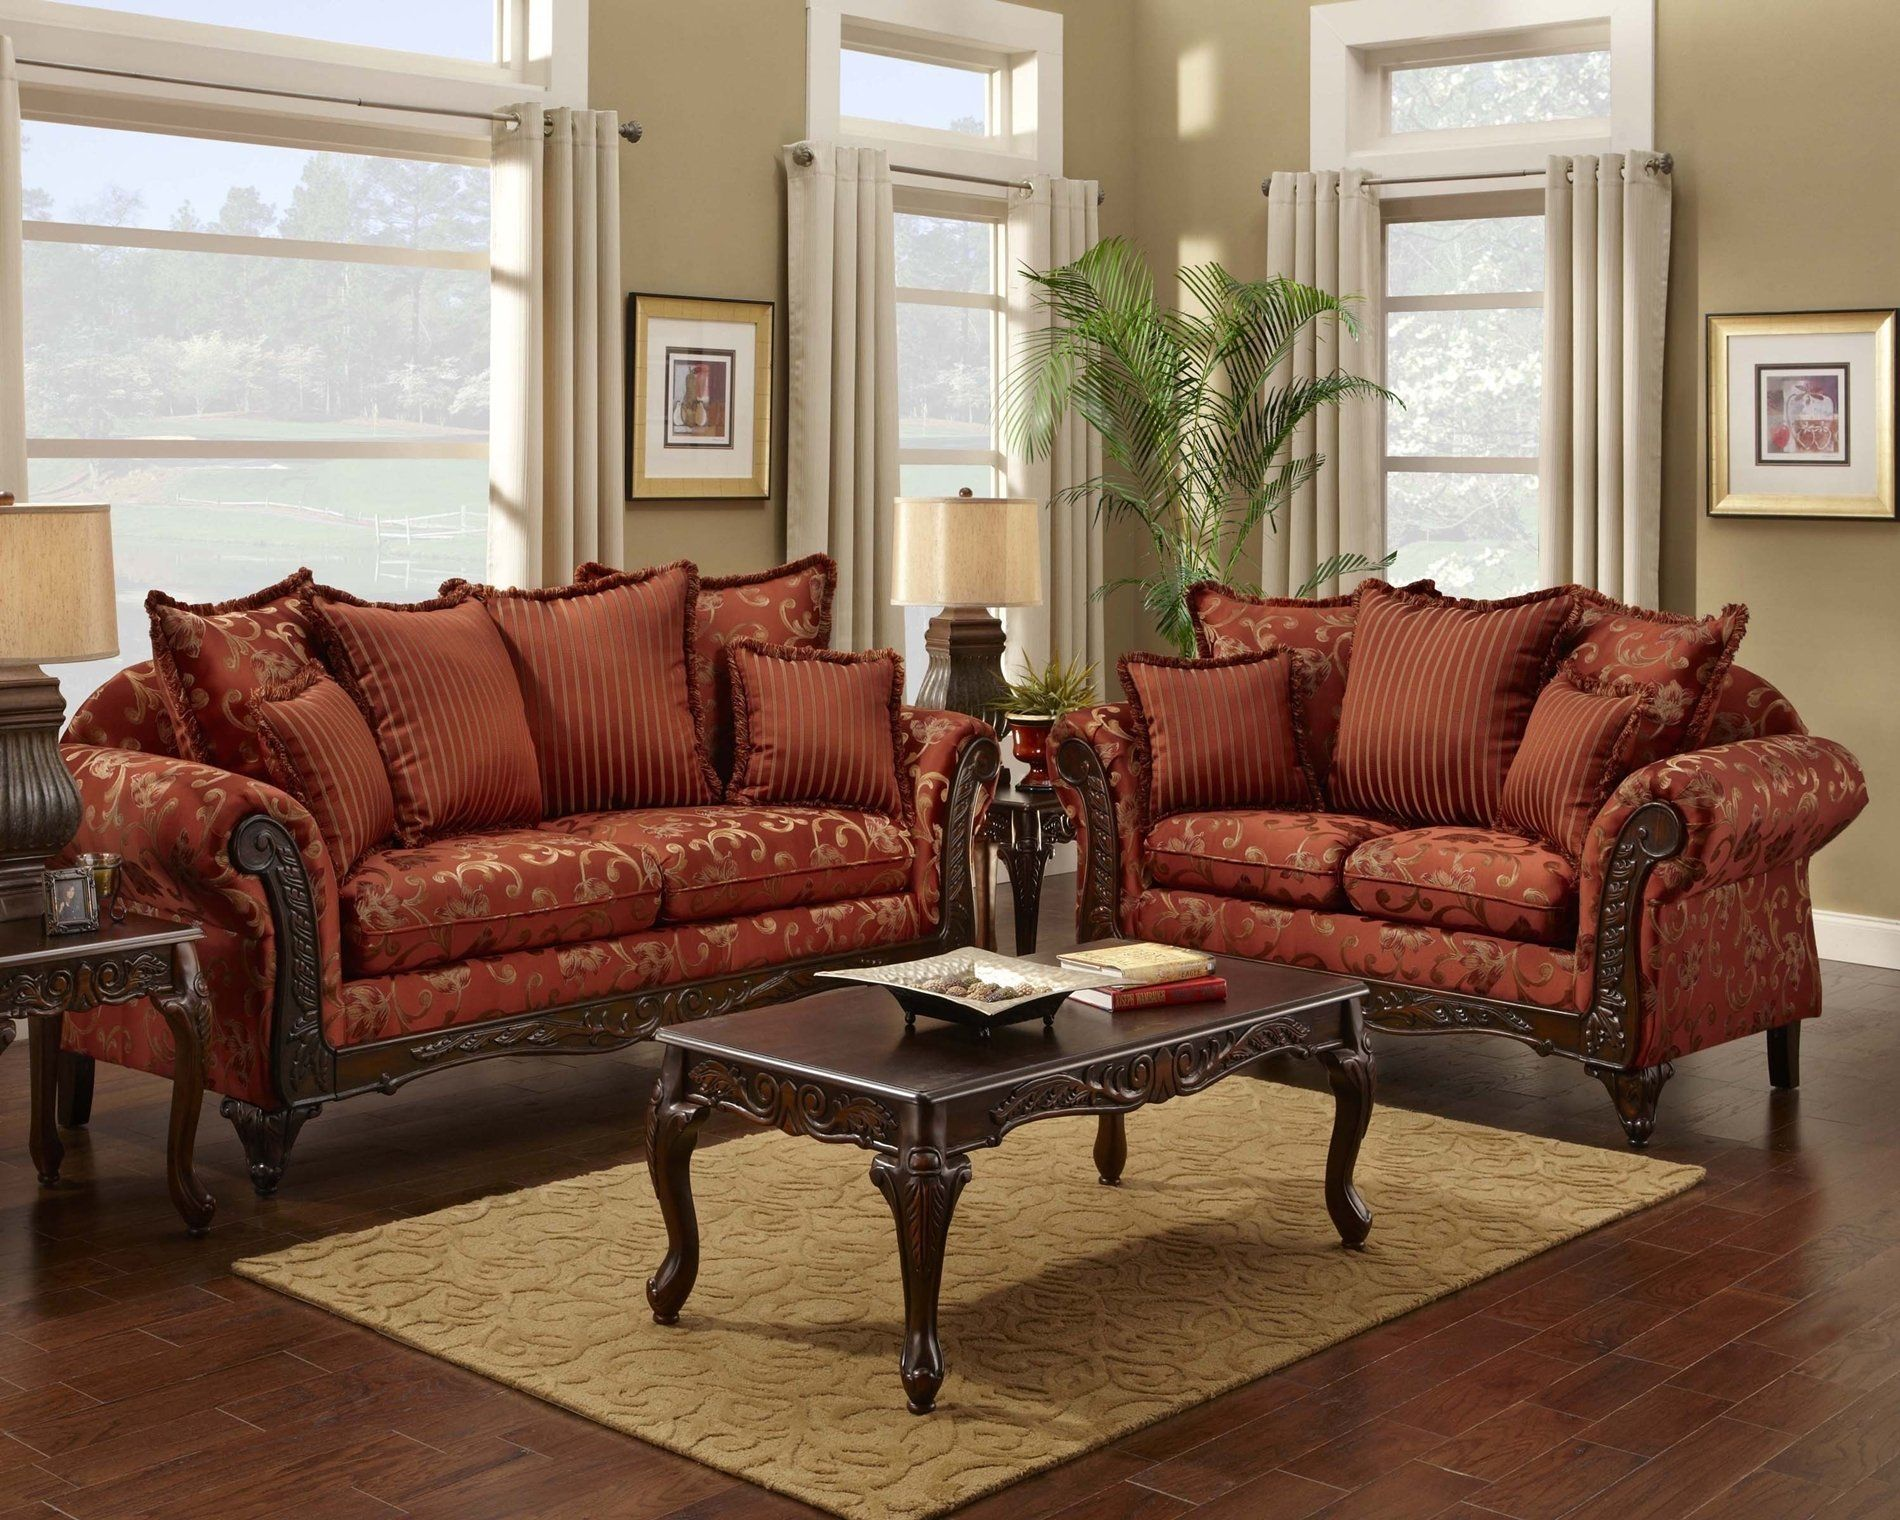 Living Room Victorian red floral print sofa and loveseat - traditional sofa set for the